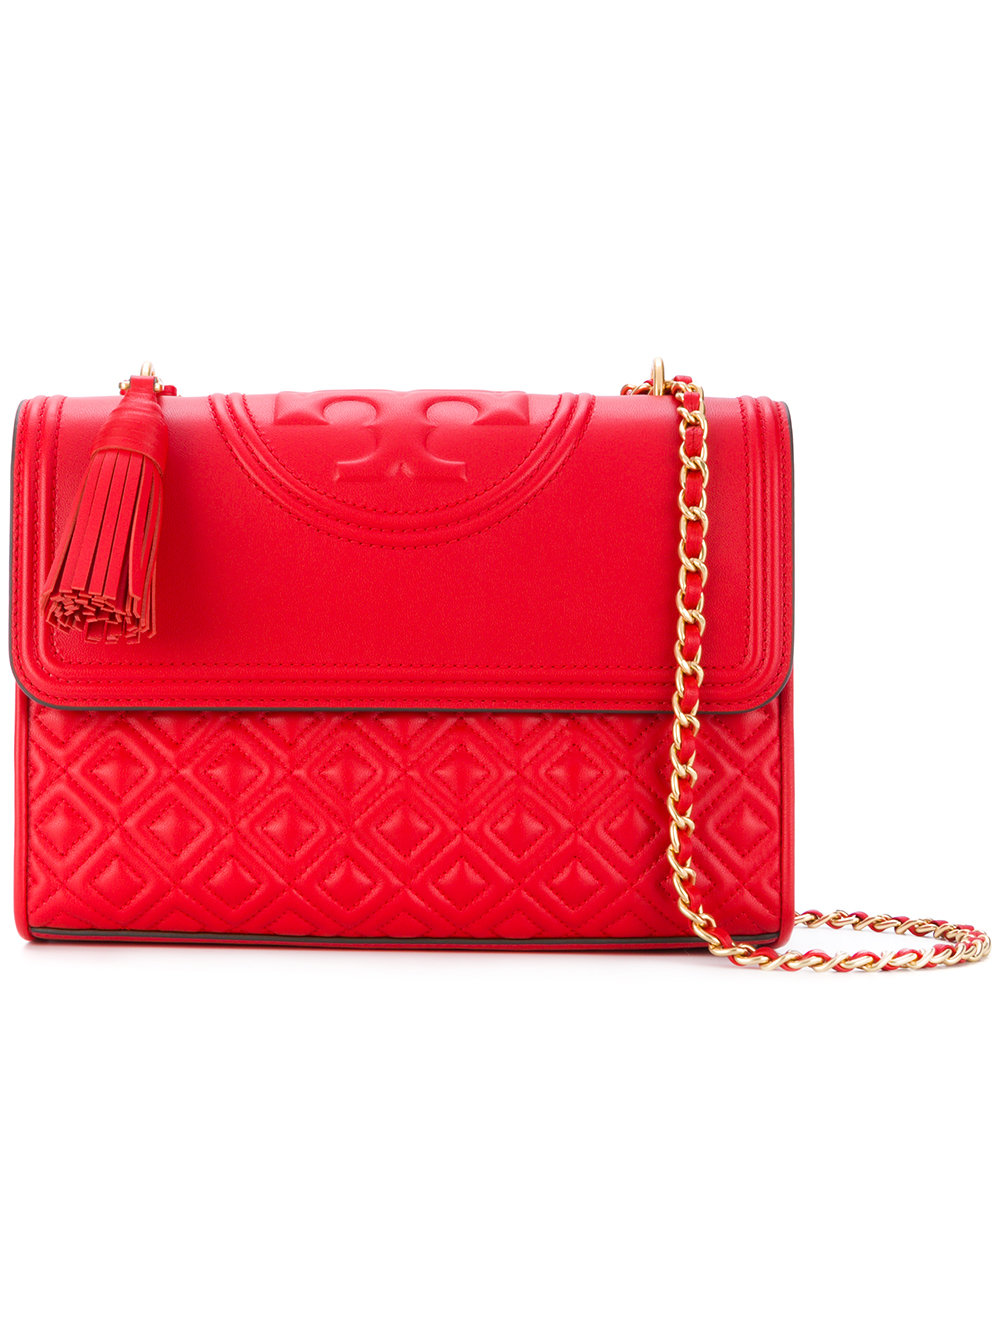 Tory Burch FLEMING GRANDE